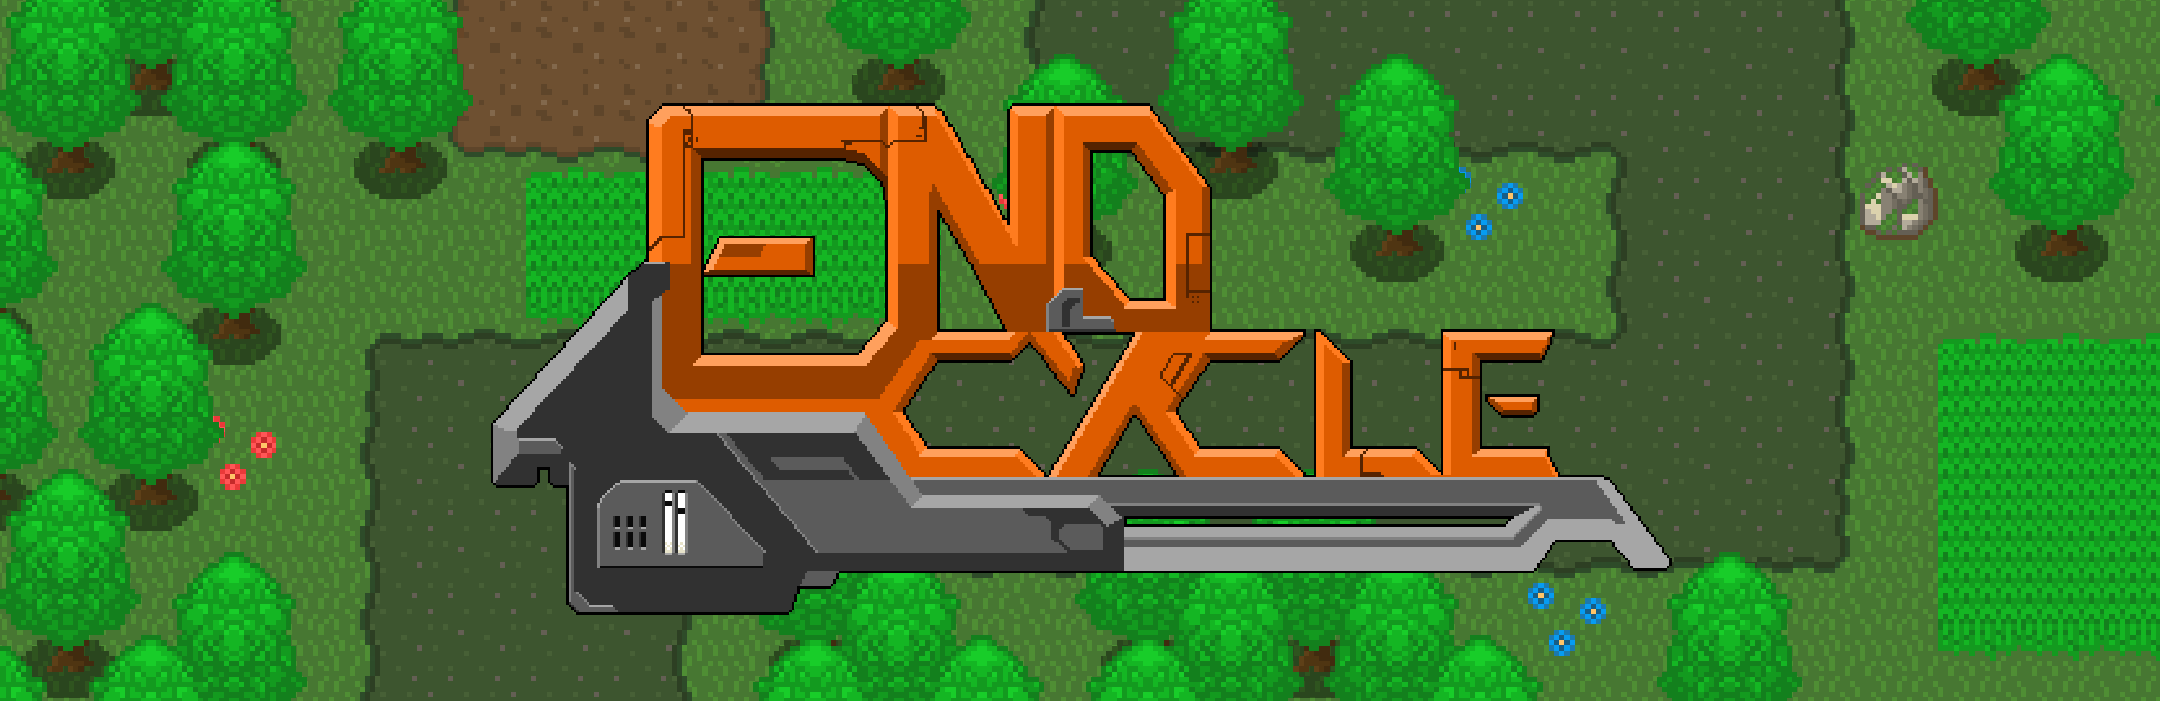 EndCycle VS. - Action RPG. Online Multiplayer